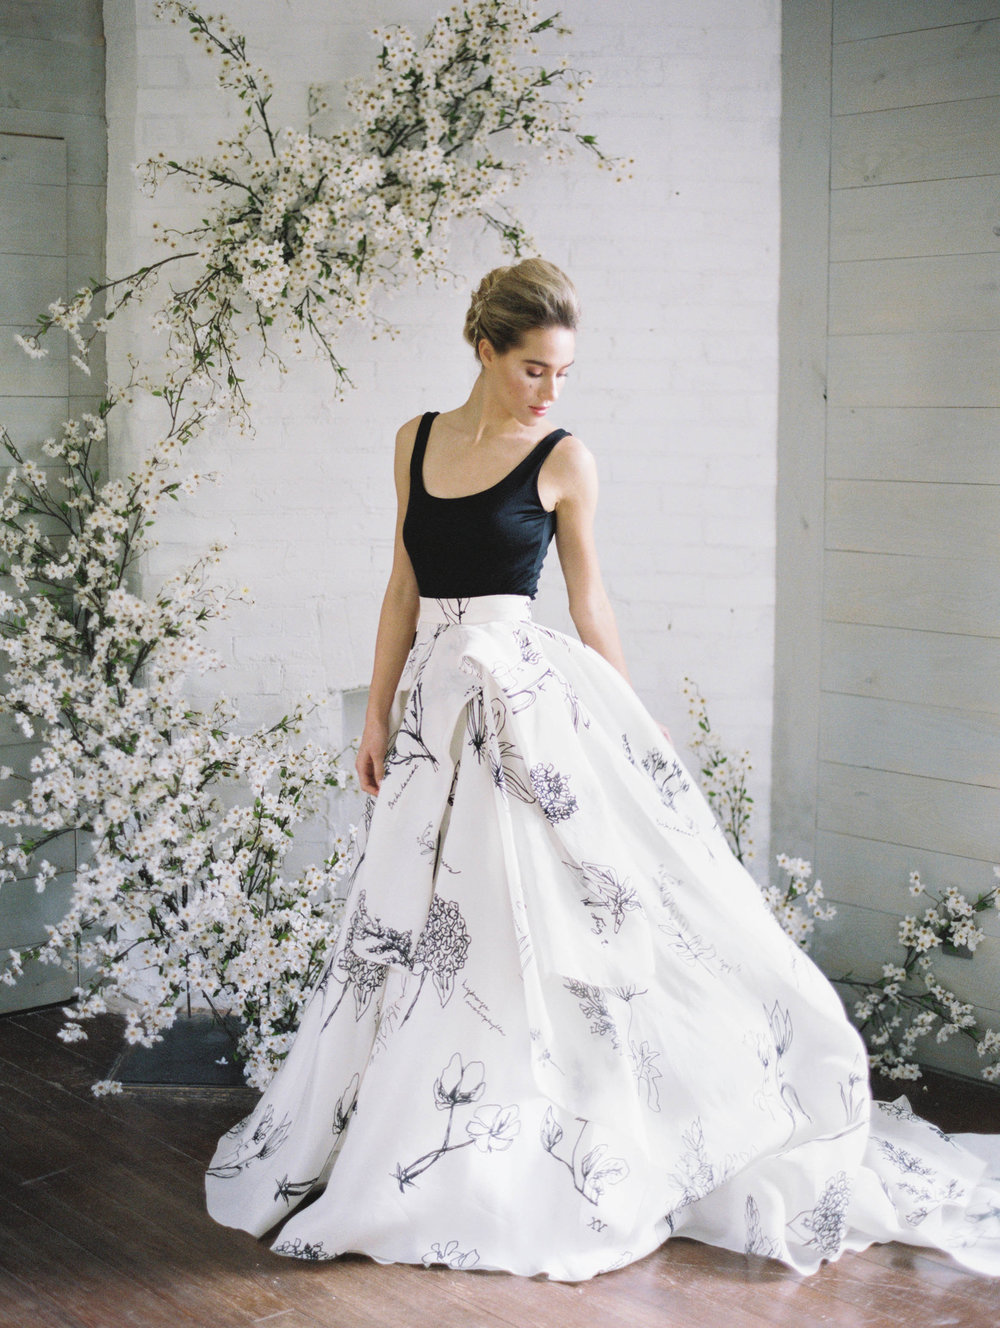 Printed floral wedding skirt black and white bridal separates nyc designer12.jpg